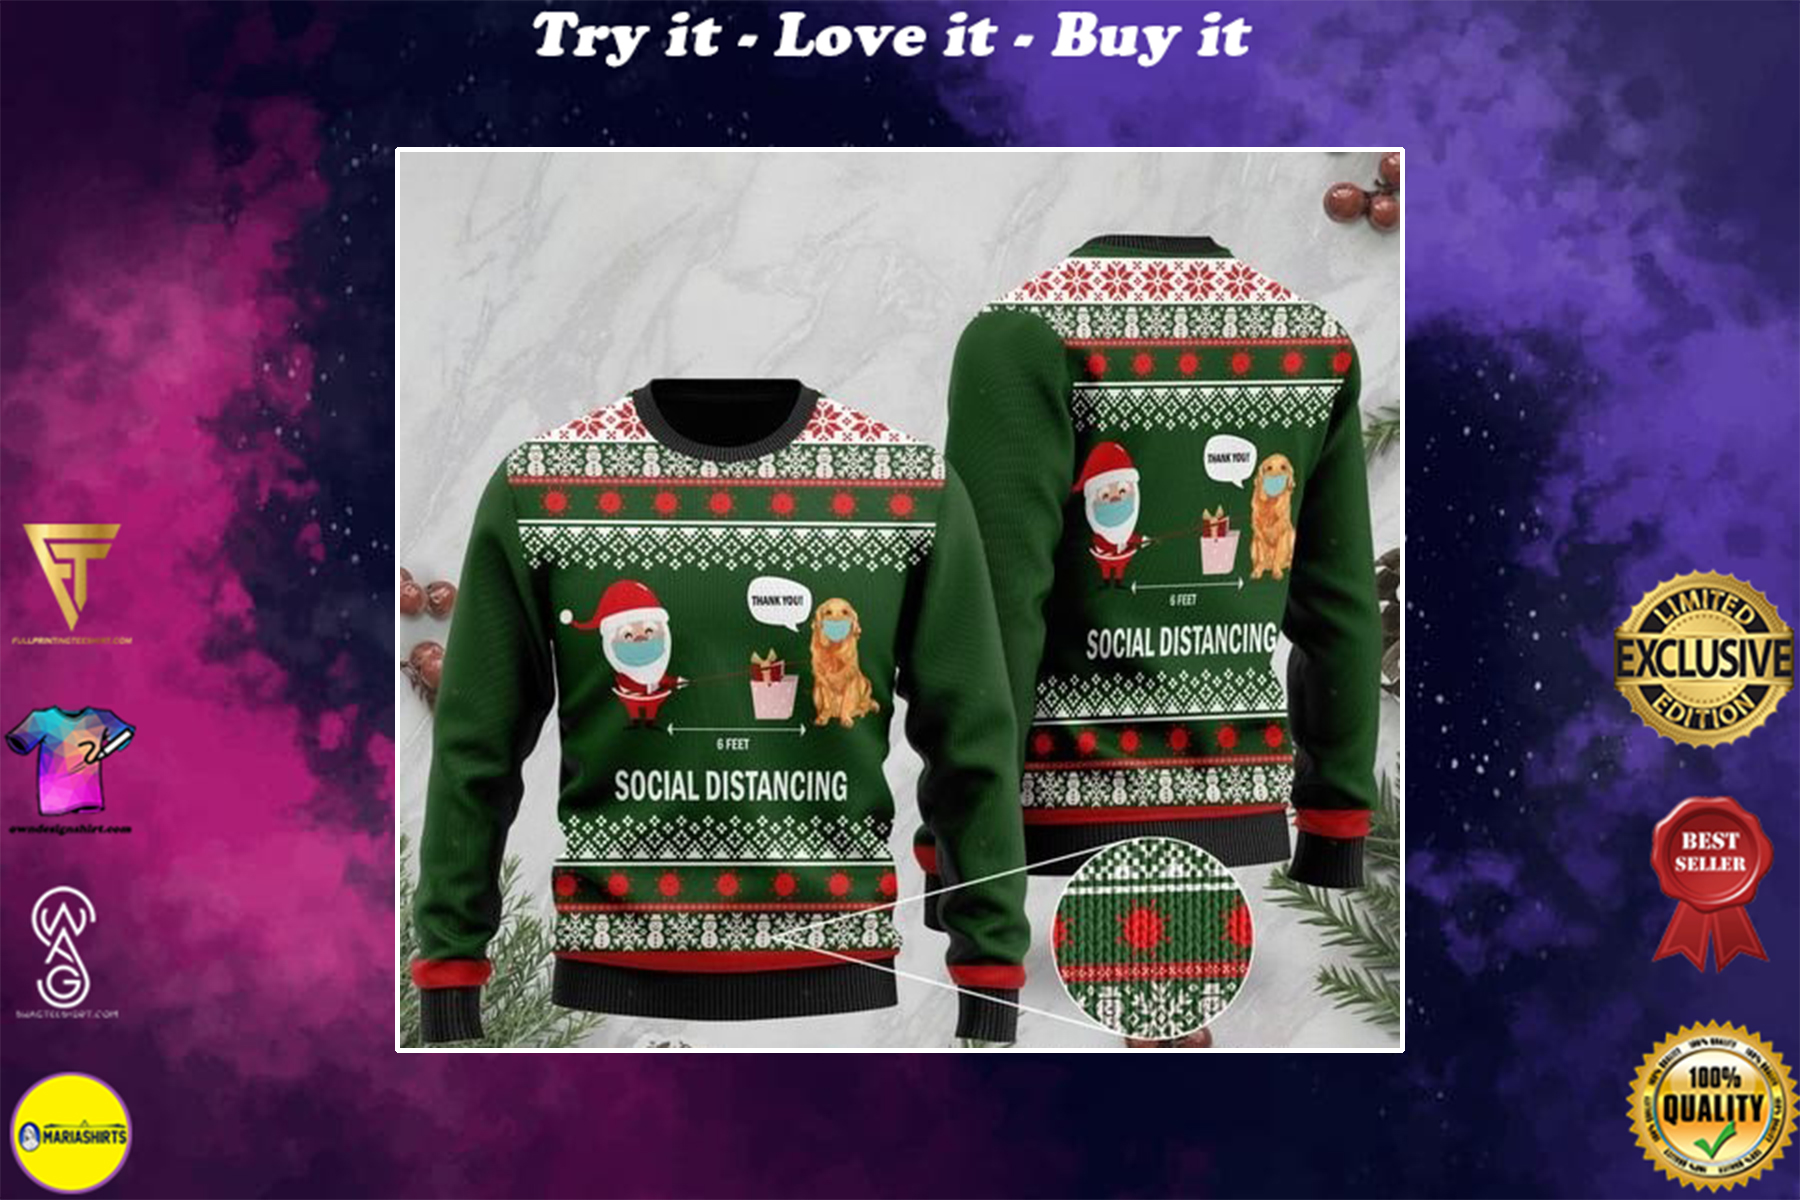 6 feet social distancing golden retriever and santa claus full printing ugly sweater